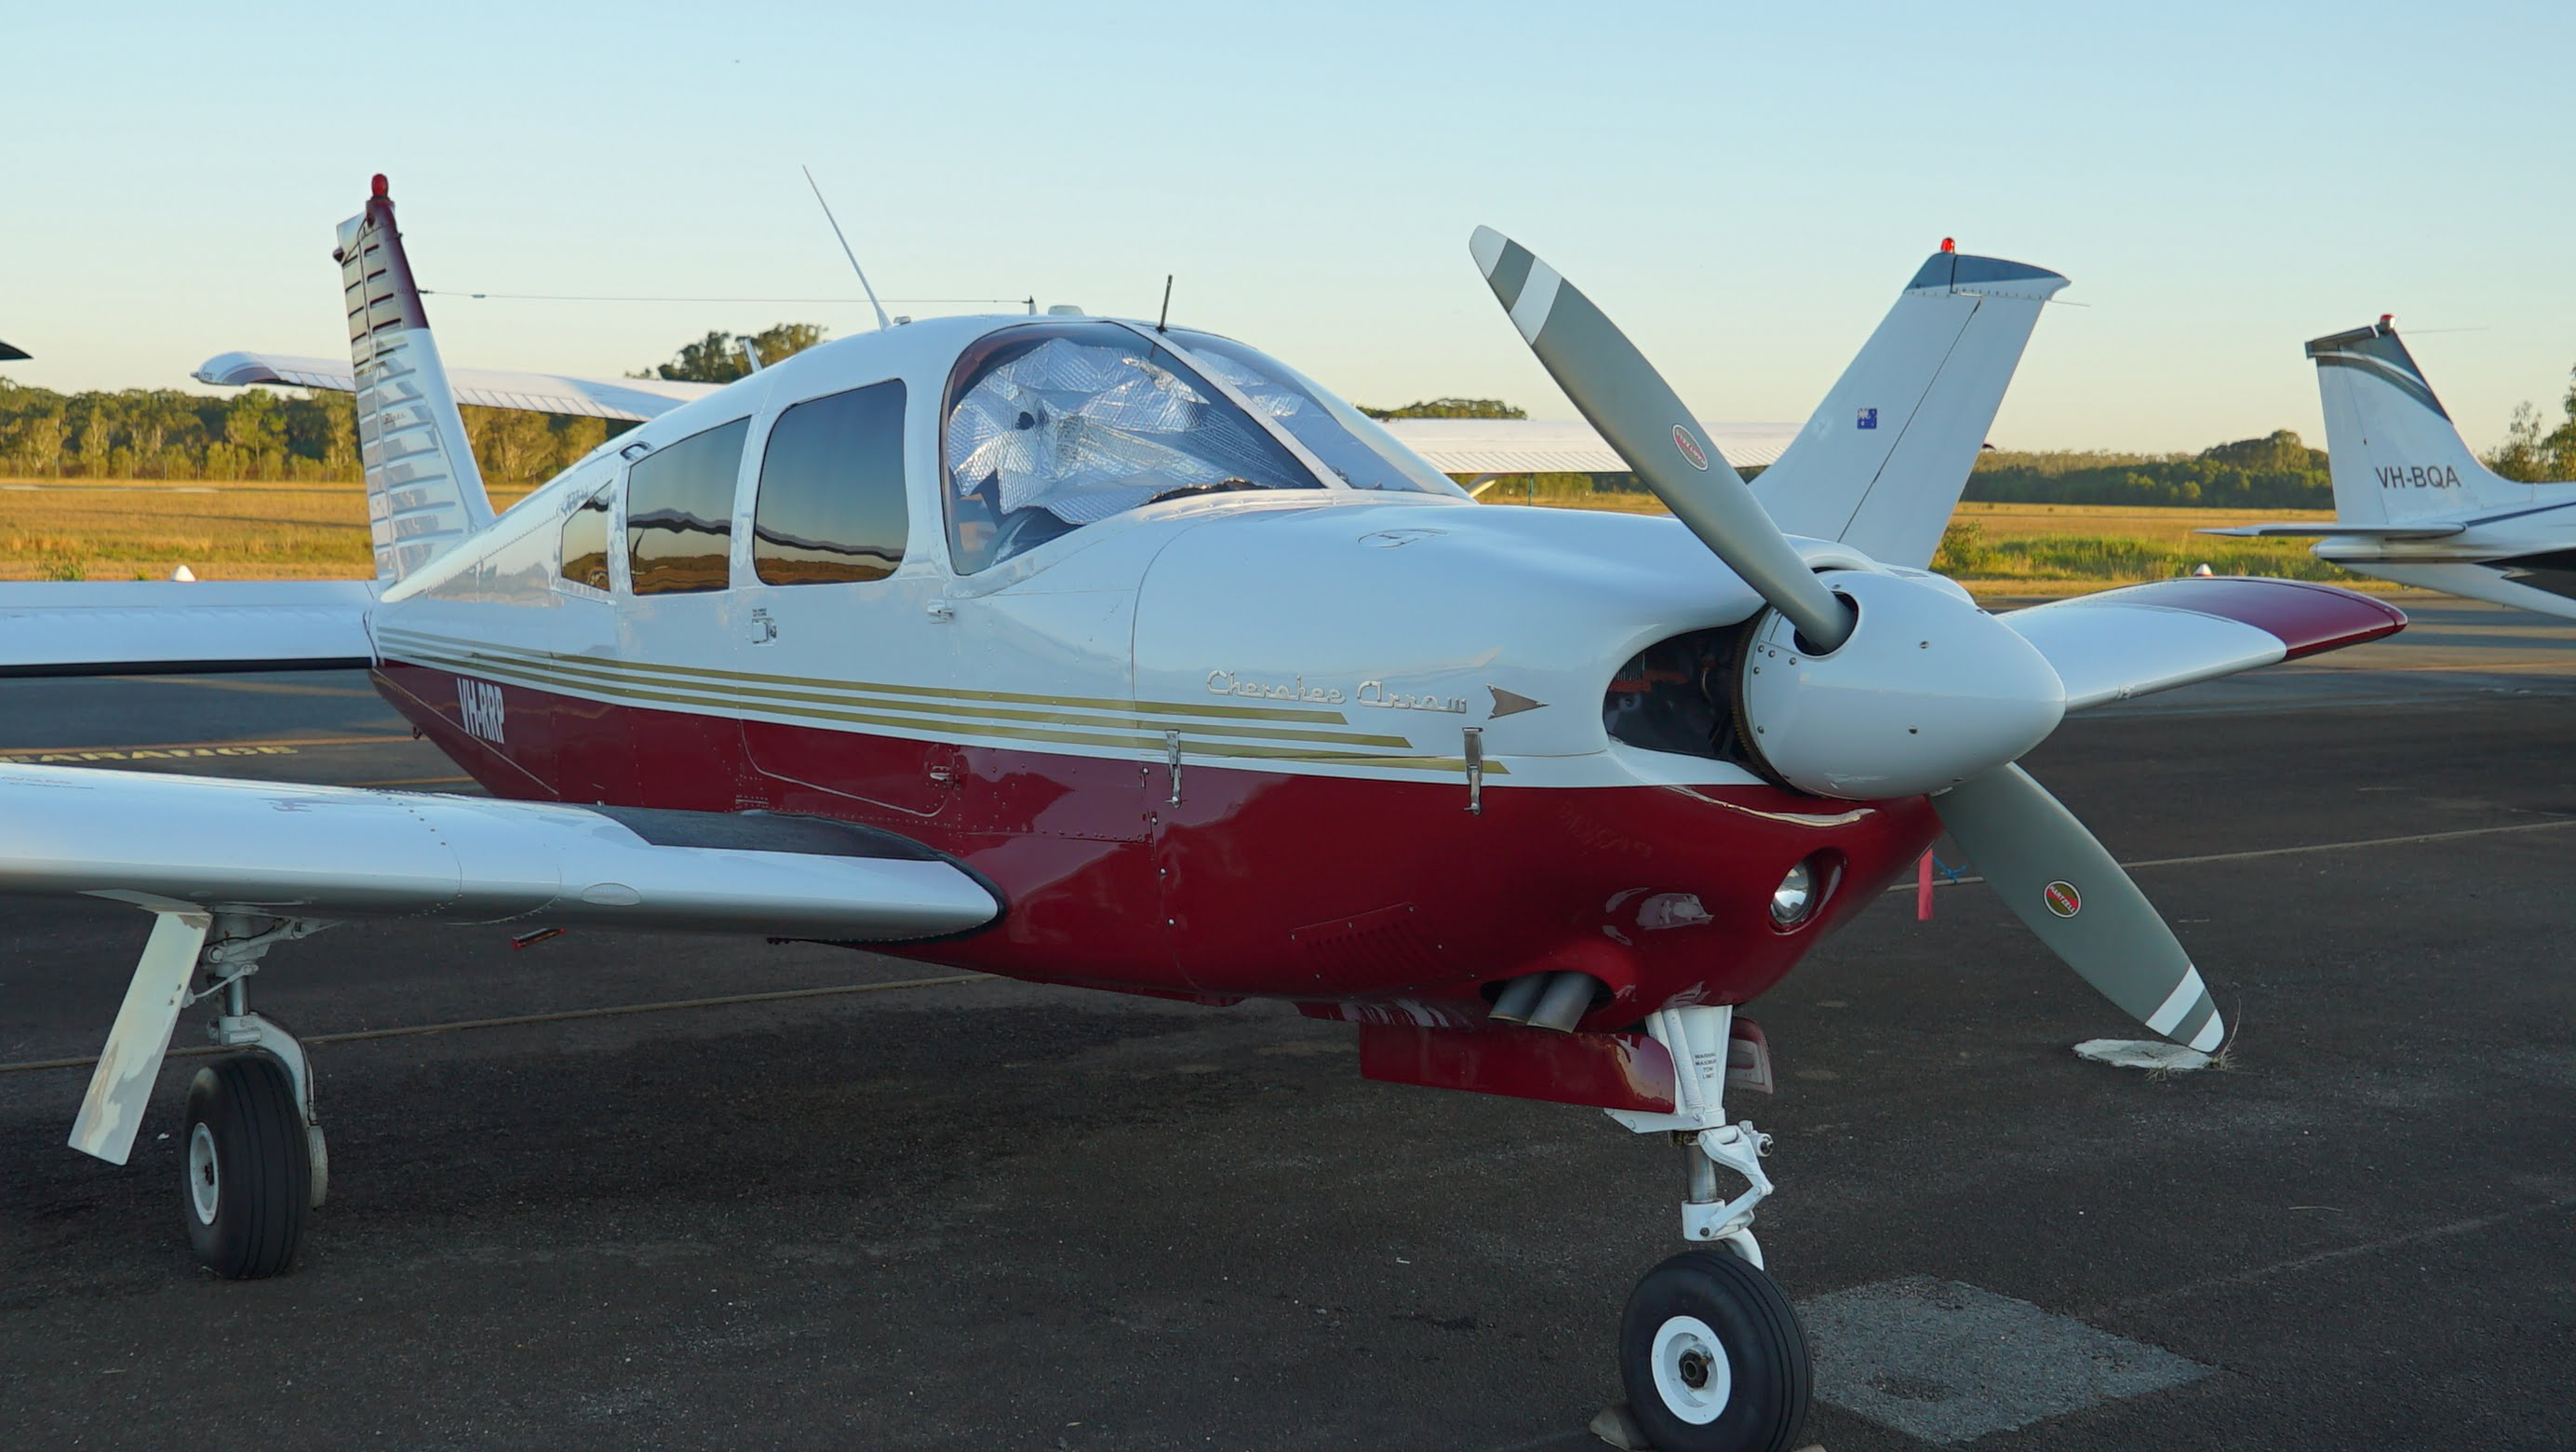 Ra To Recreational Pilot Licence Conversion Gofly Aviation